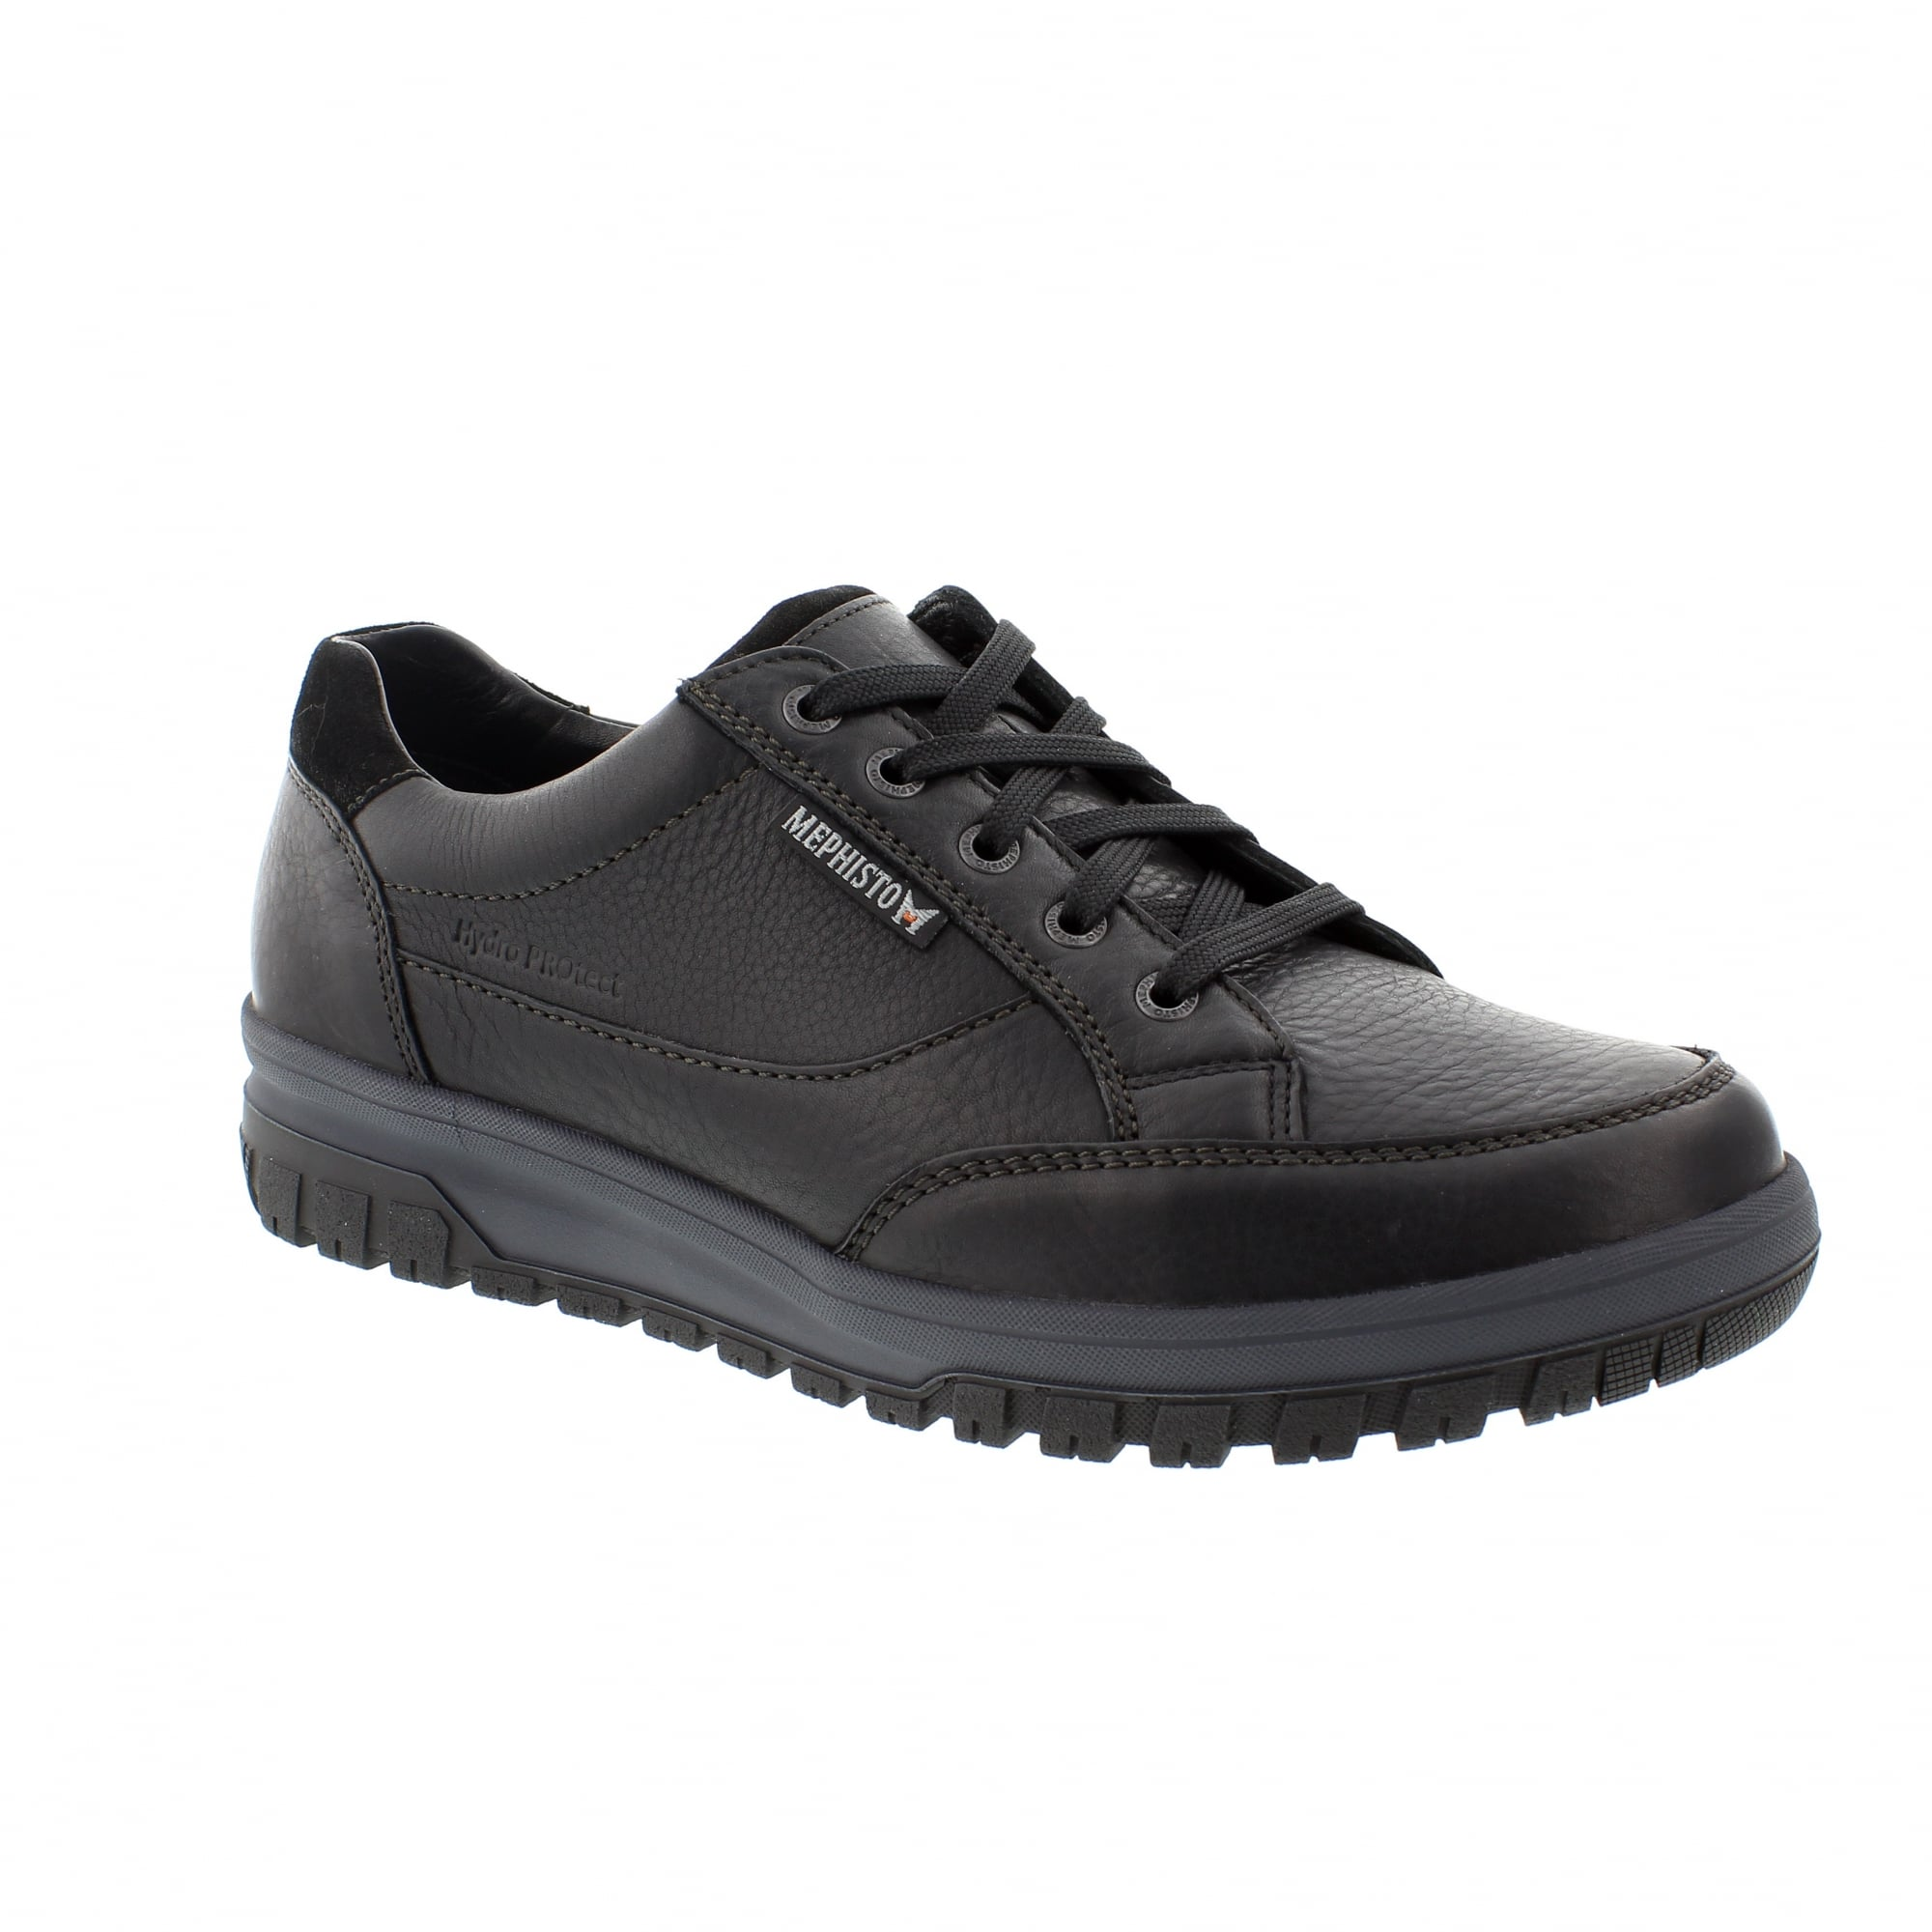 055015cf93 Mephisto Paco 8900/10500 Mens Outdoor Shoes | Rogerson Shoes